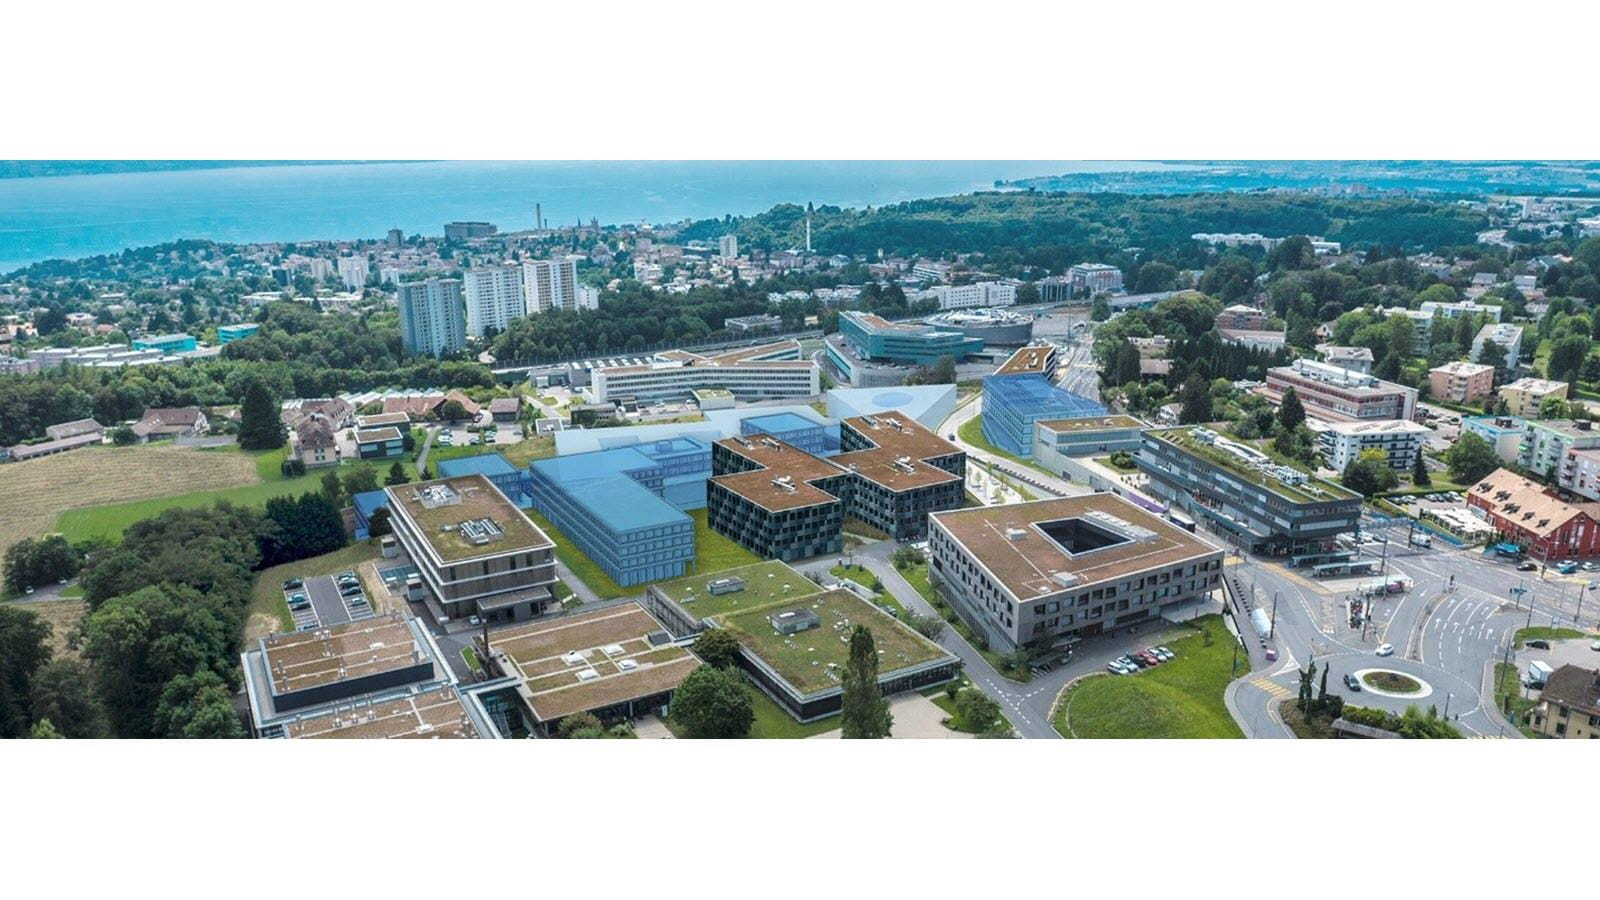 Aerial photograph of the Biopole campus in Switzerland